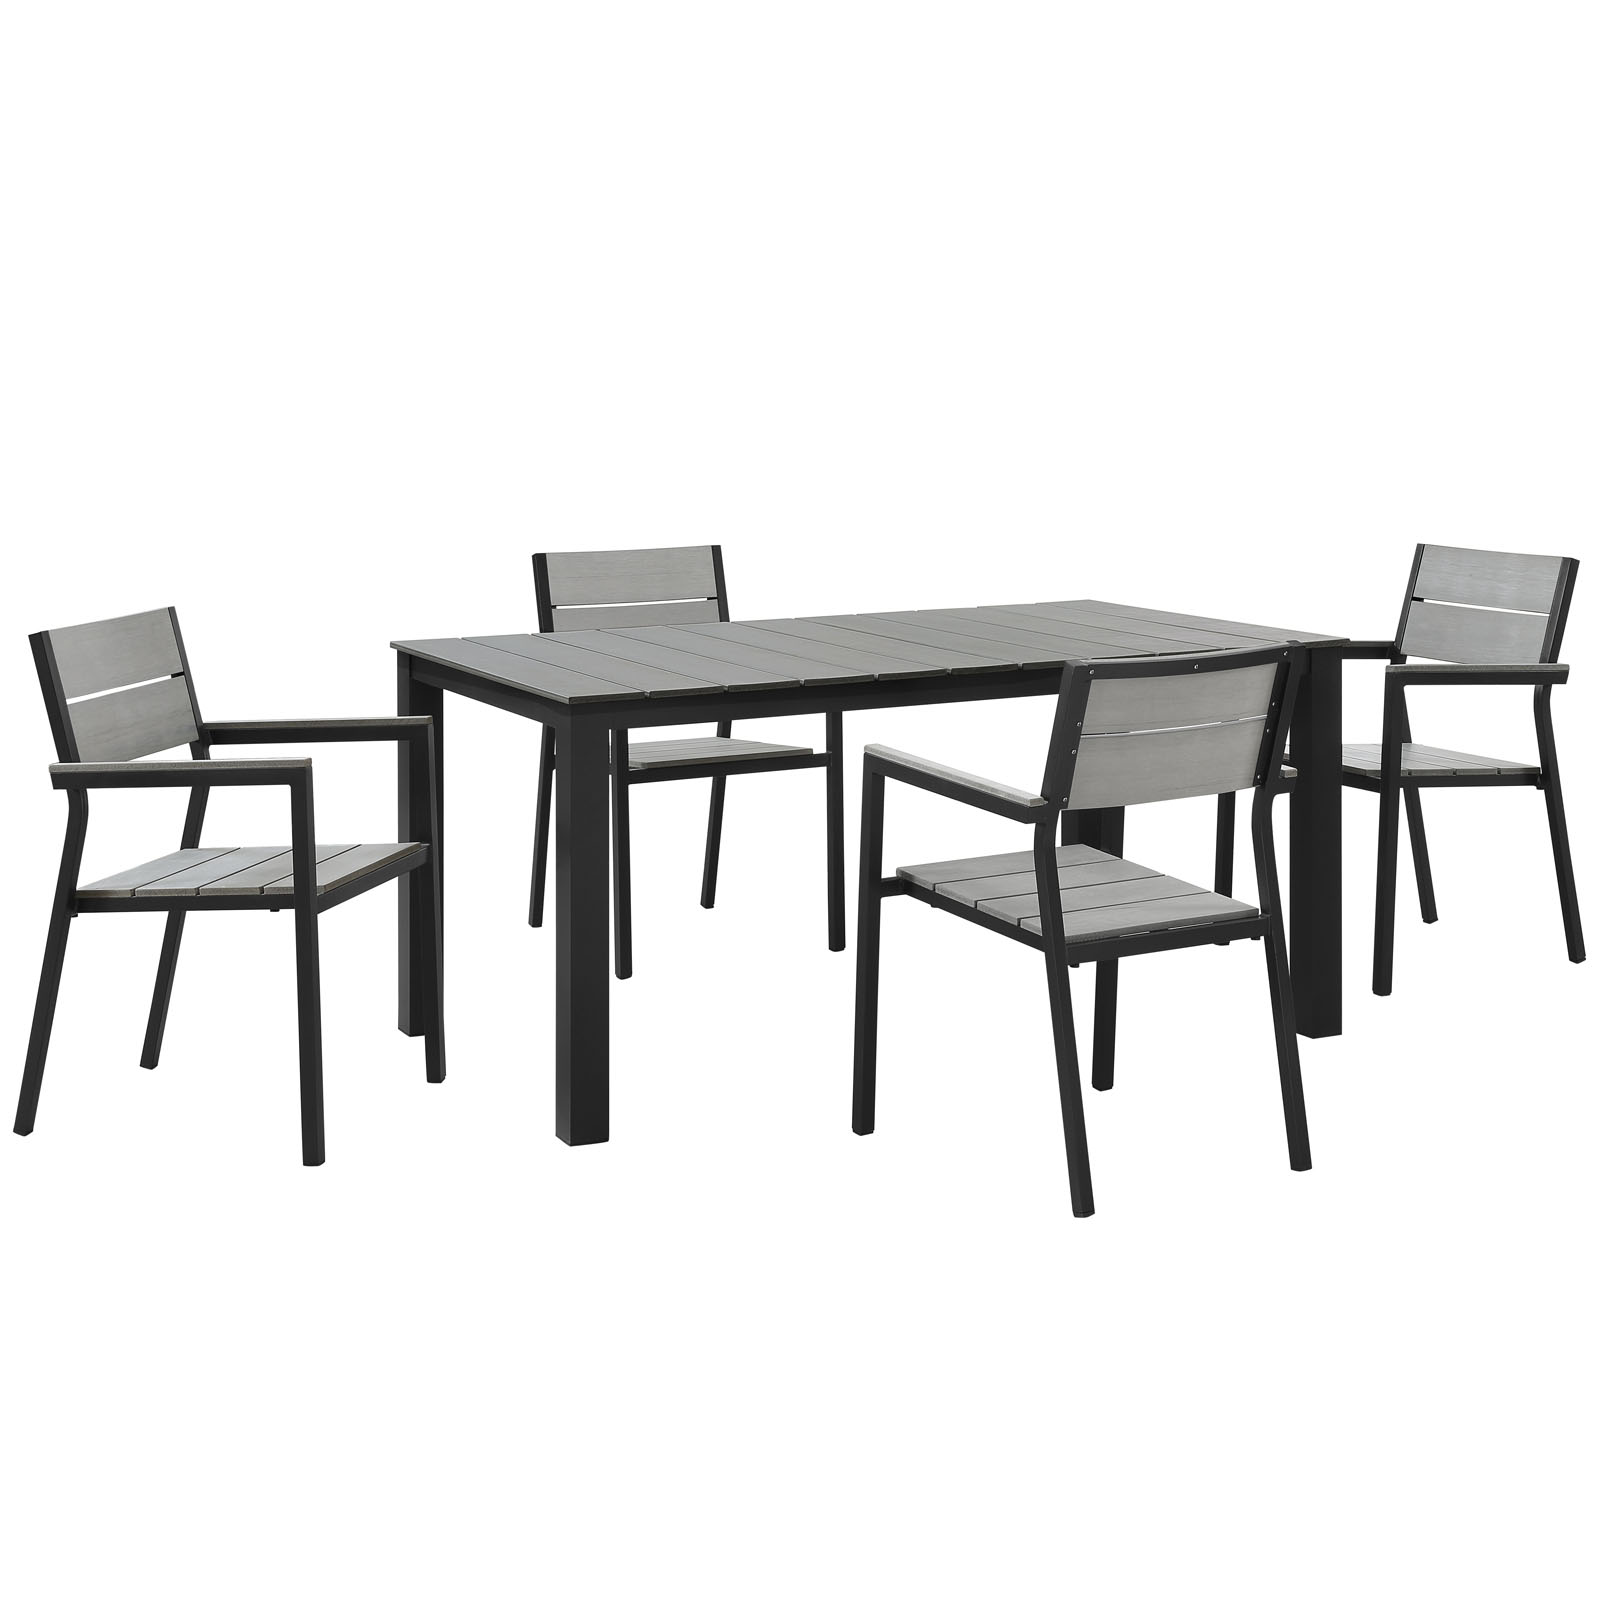 Modern Urban Contemporary 5 pcs Outdoor Patio Dining Room Set, Brown Grey Steel by America Luxury